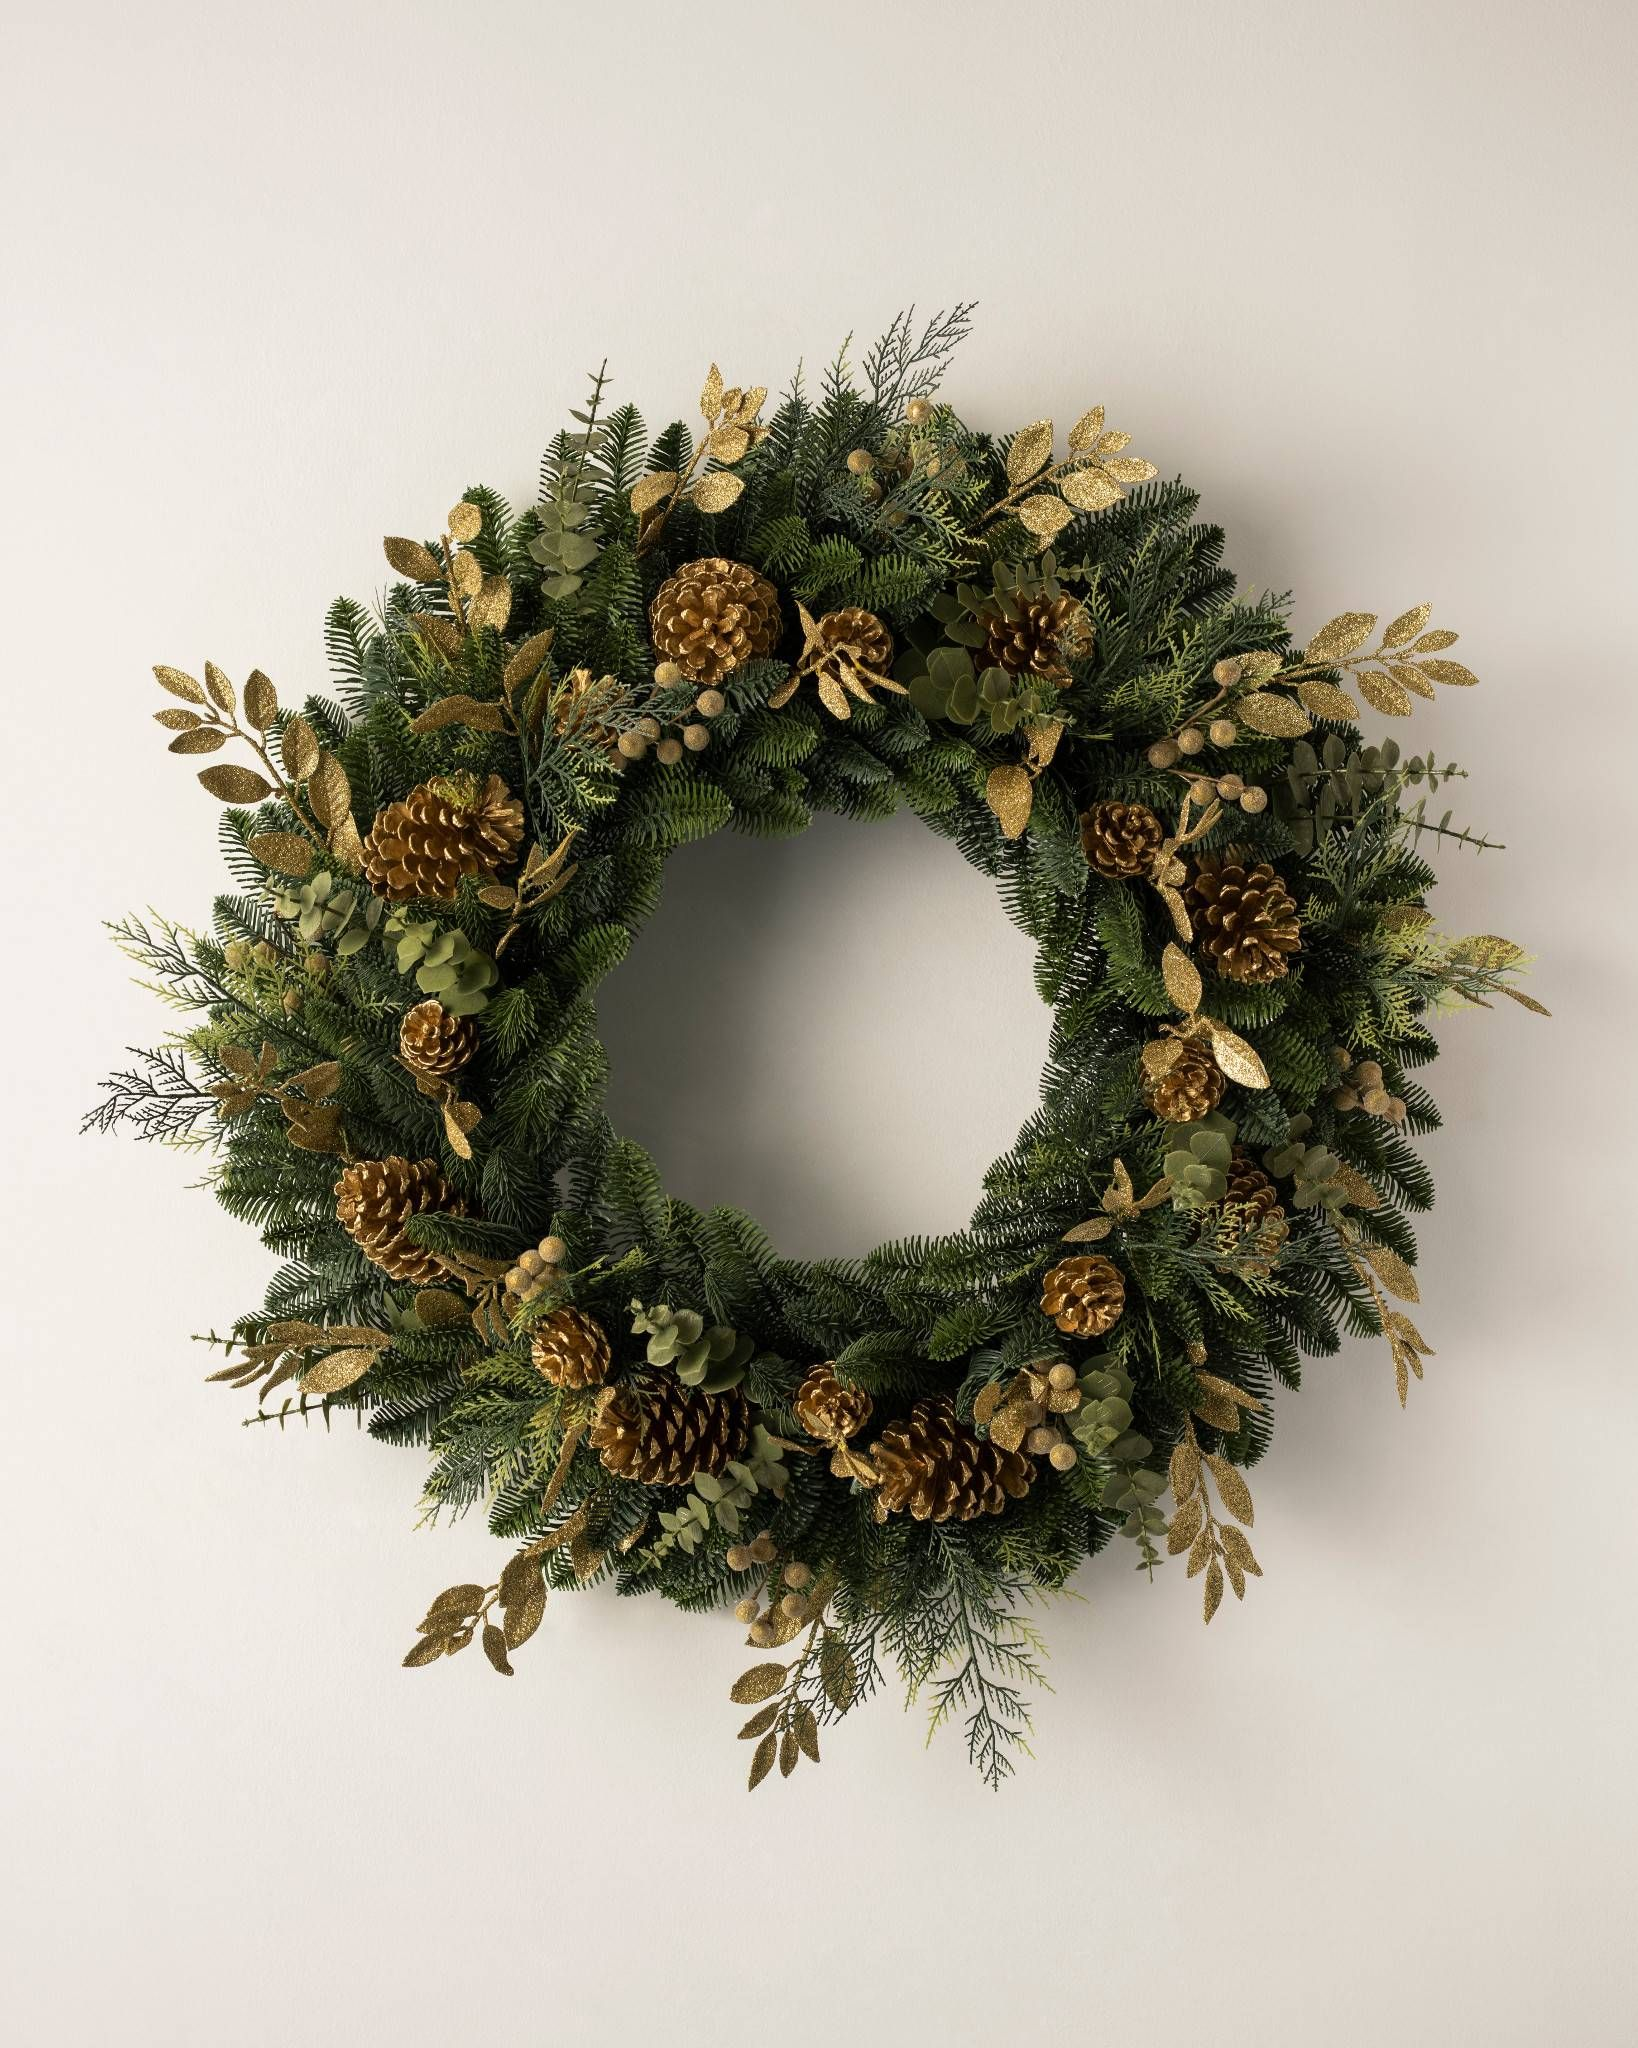 Artificial Christmas Wreaths and Garlands Foliage